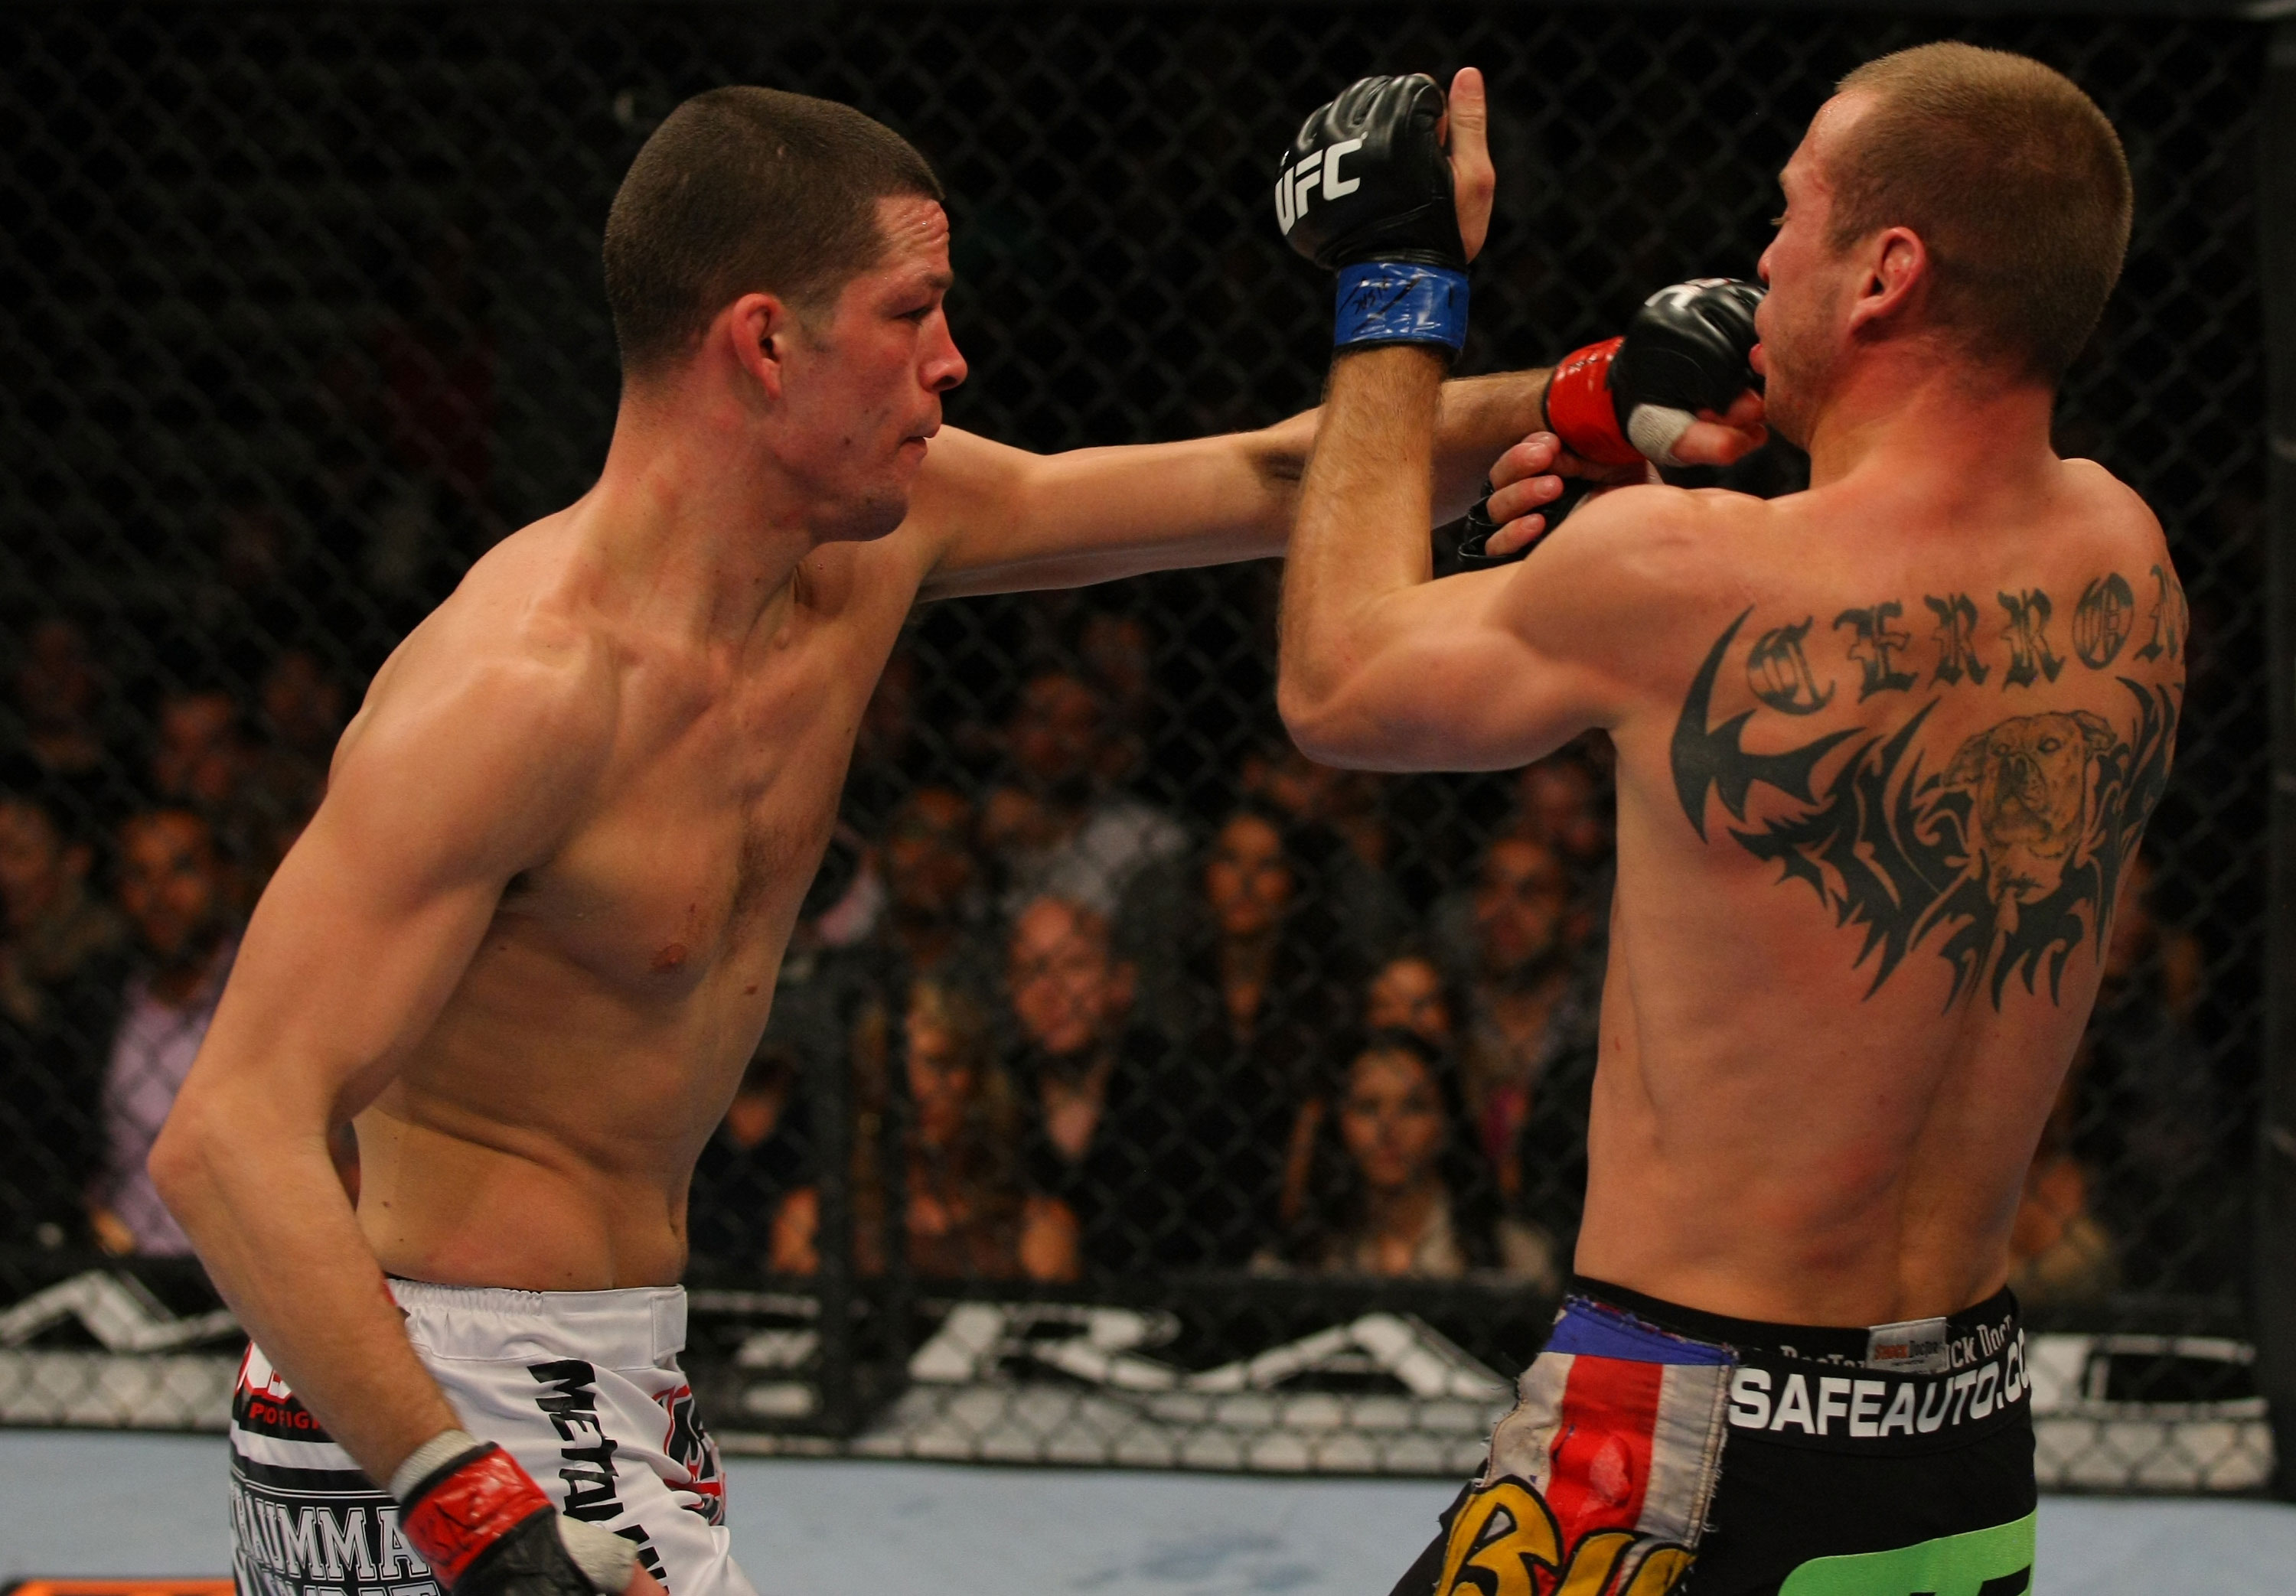 LAS VEGAS, NV - DECEMBER 30:  Nate Diaz (left) punches Donald Cerrone (right) during the UFC 141 event at the MGM Grand Garden Arena on December 30, 2011 in Las Vegas, Nevada.  (Photo by Donald Miralle/Zuffa LLC/Zuffa LLC via Getty Images) *** Local Caption *** Nate Diaz; Donald Cerrone